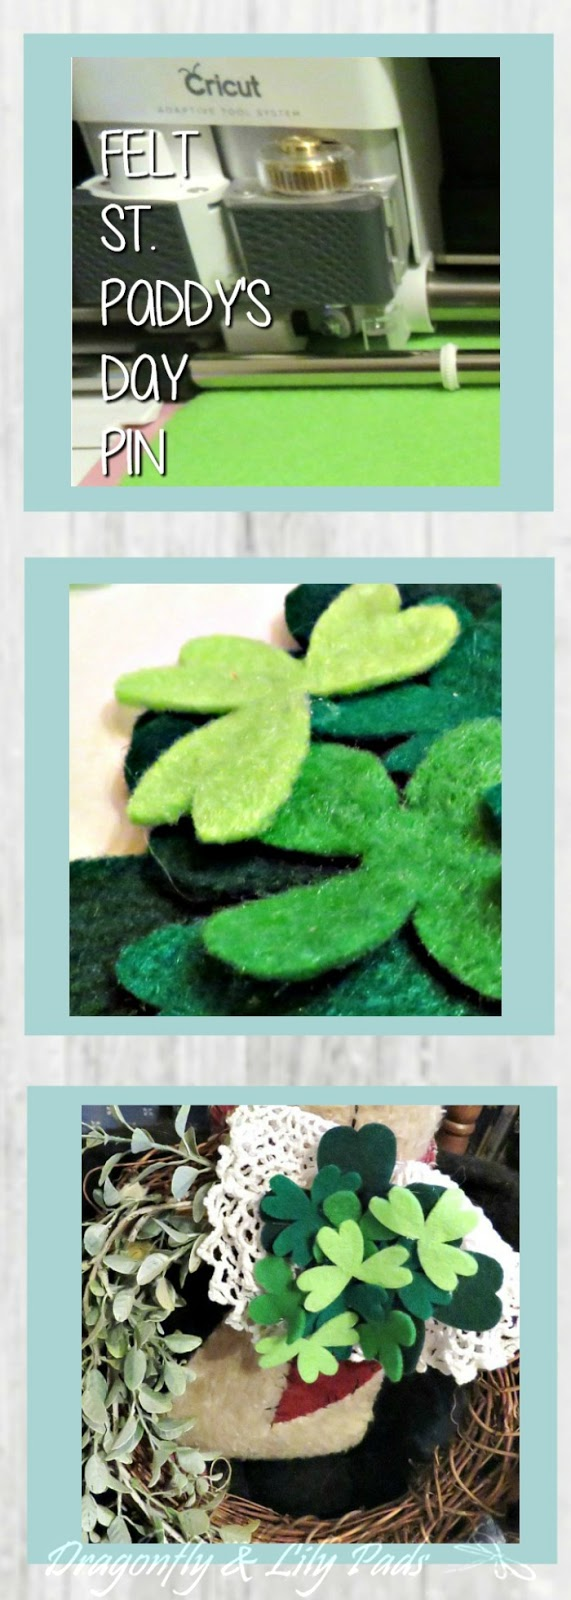 Pinterest Image Strip of Felt St. Paddy's Day Pin. Cricut Maker